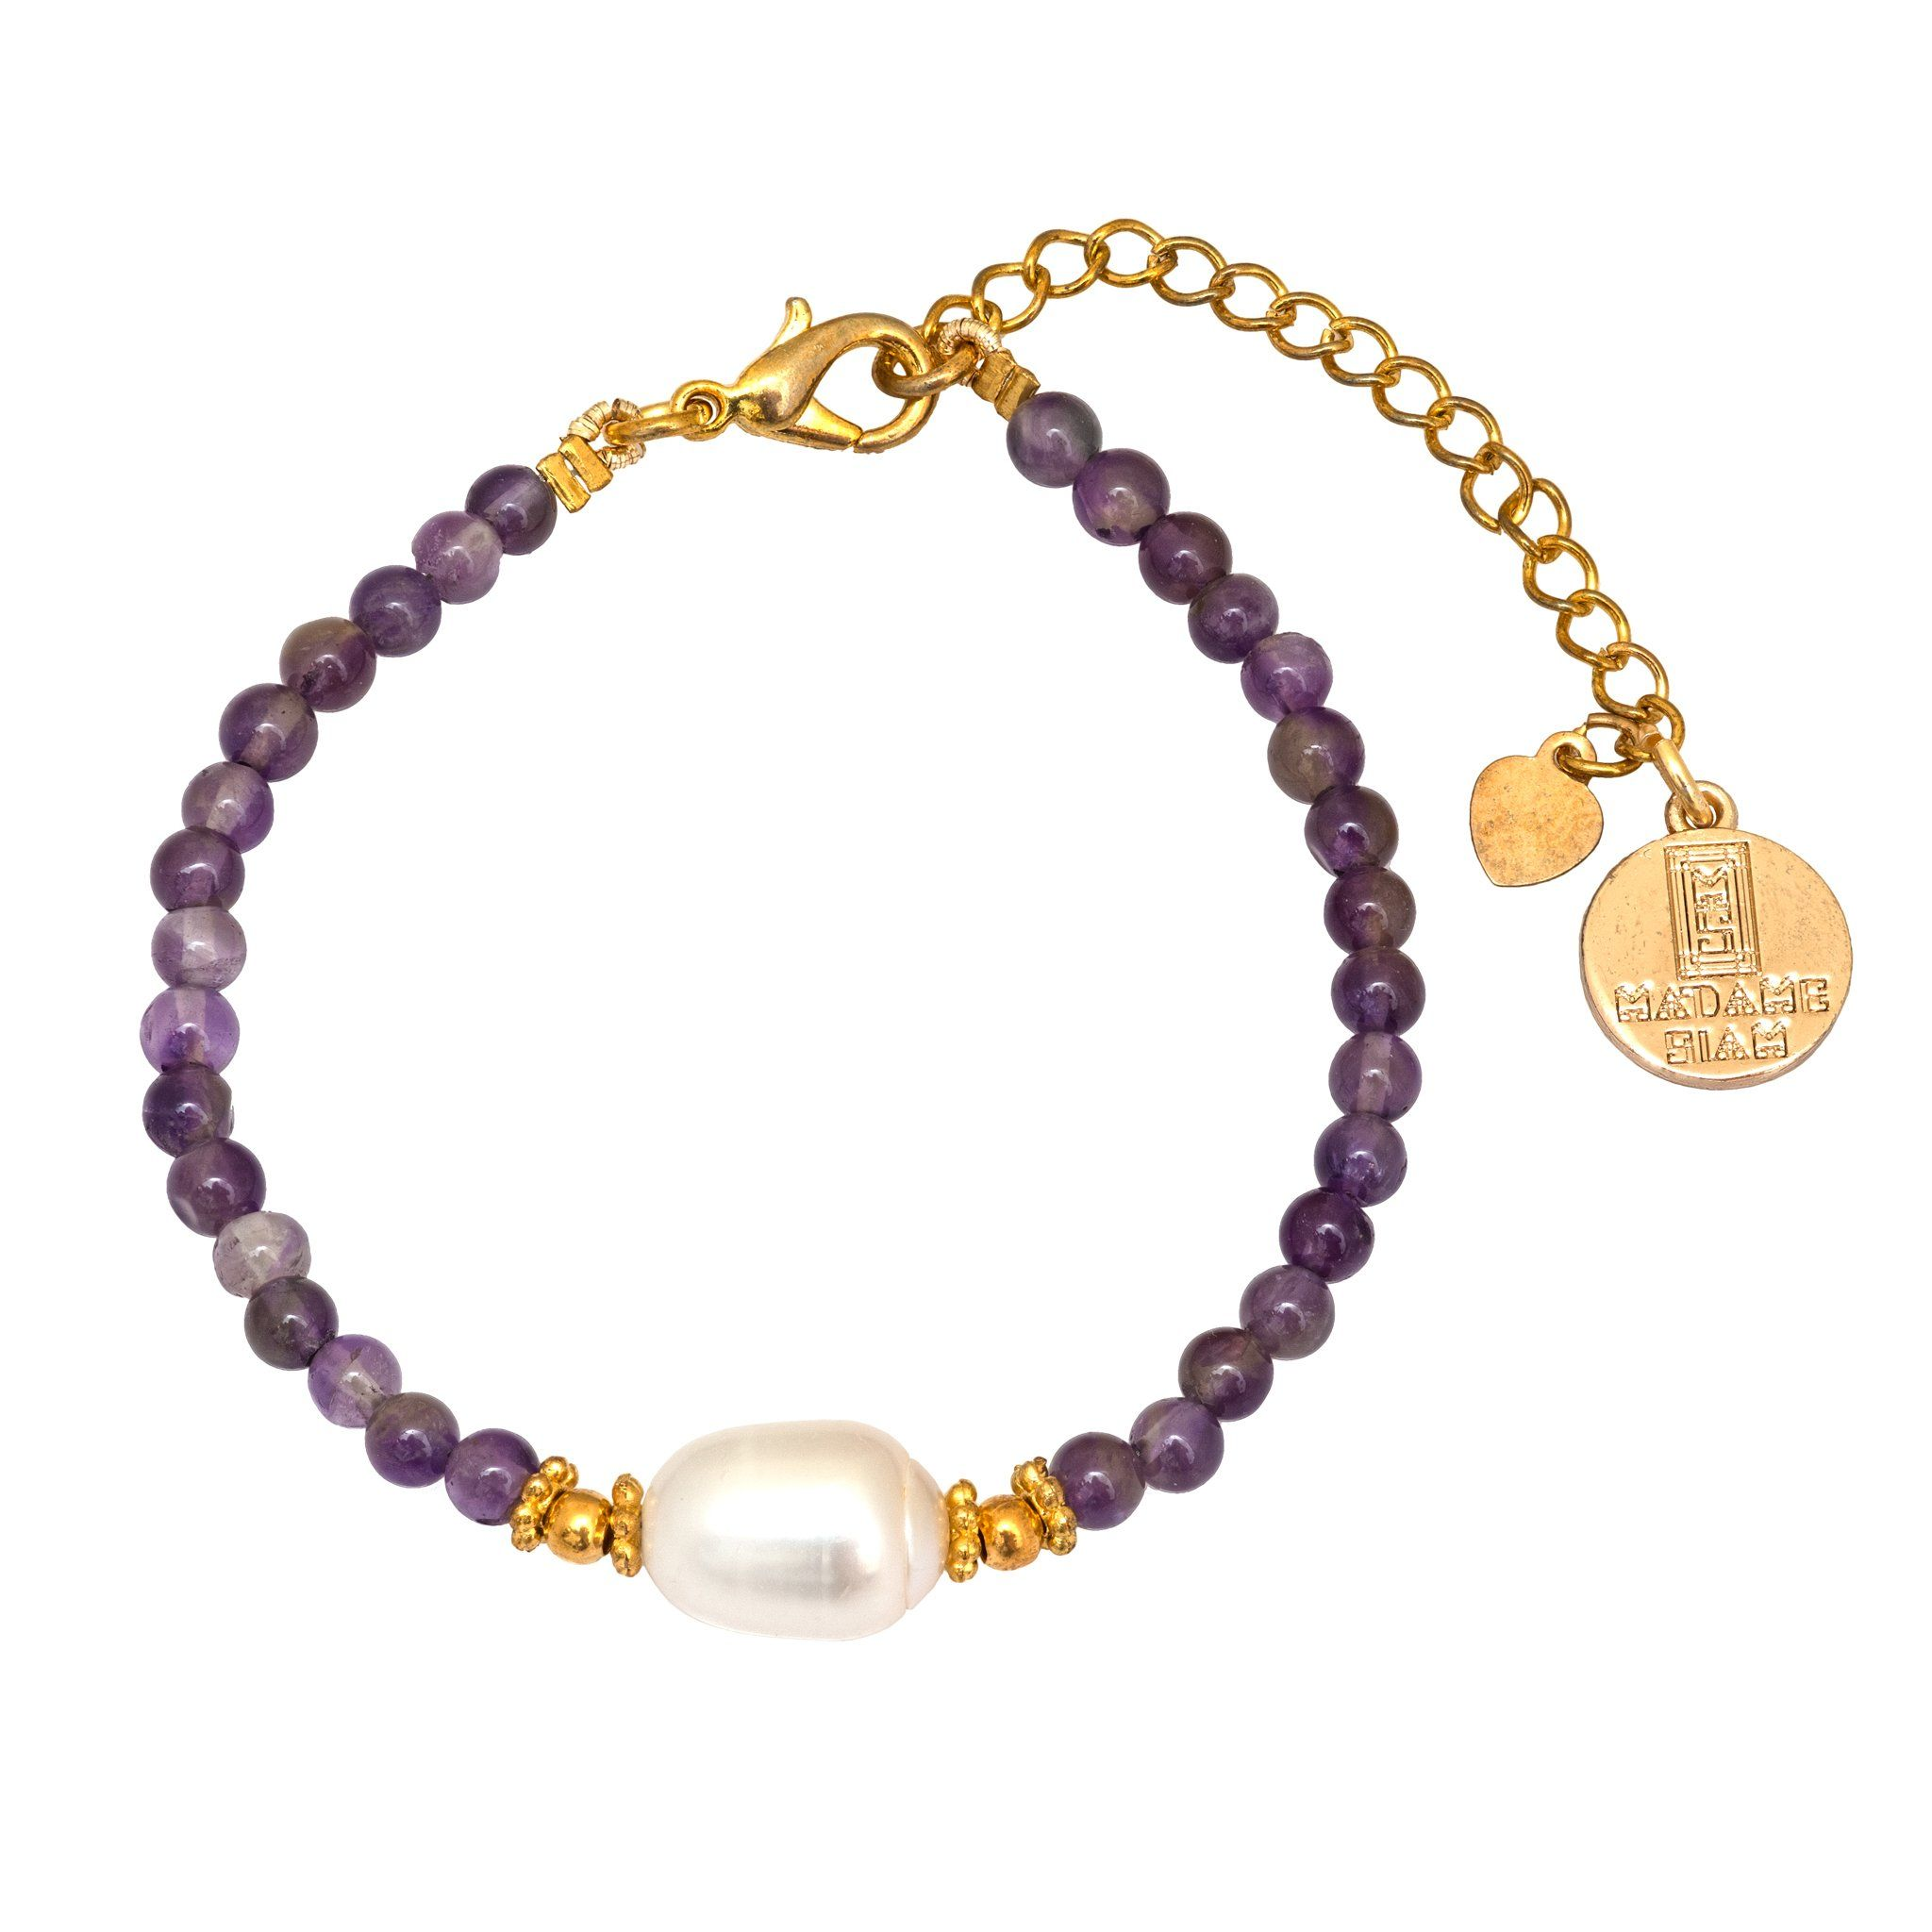 KIMUKA pearls and amethyst bracelet